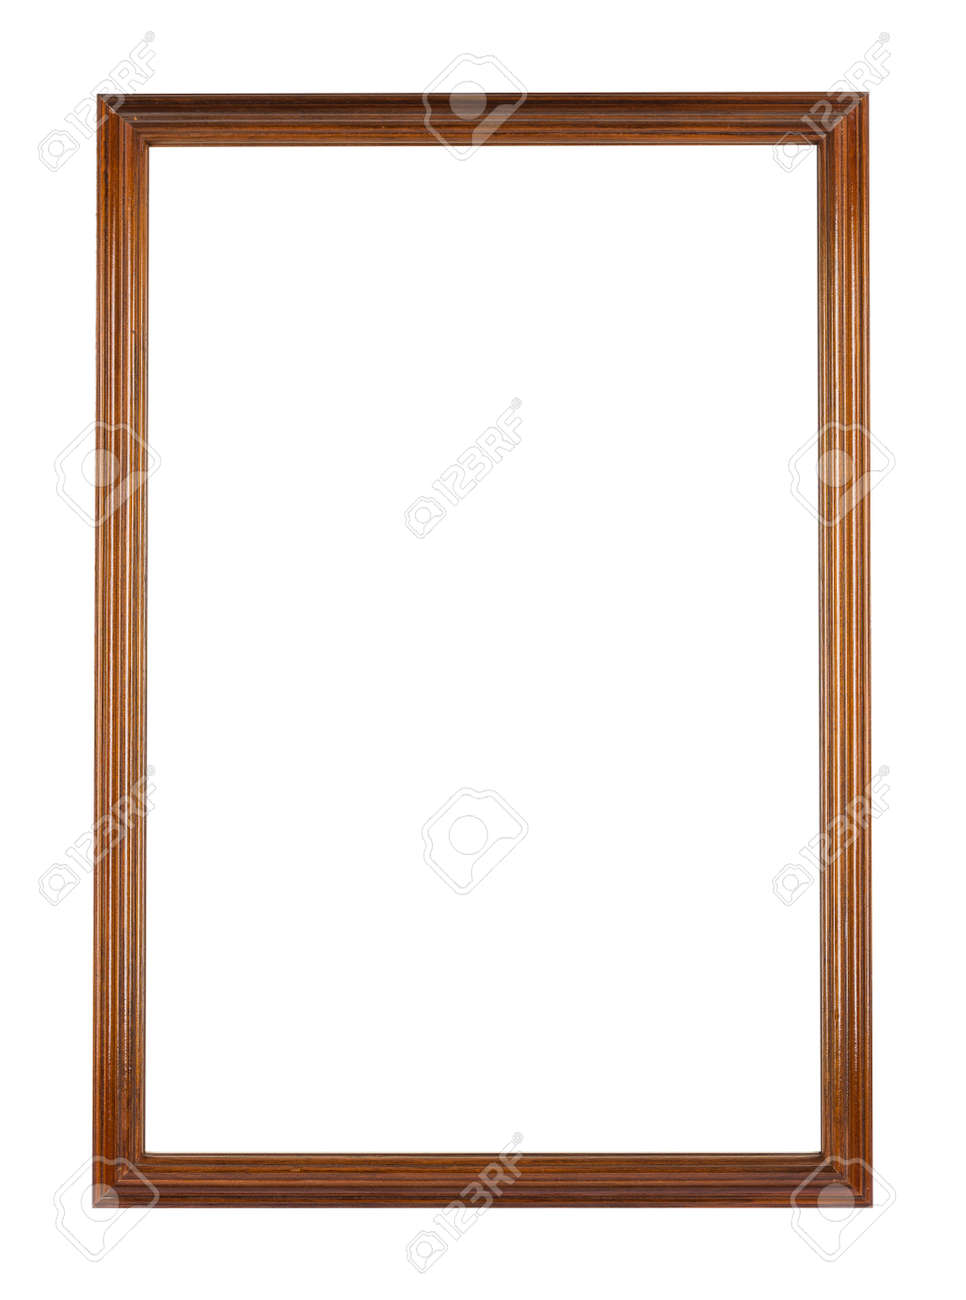 A rectangular wooden frame for painting or picture isolated on a white background - 152001259